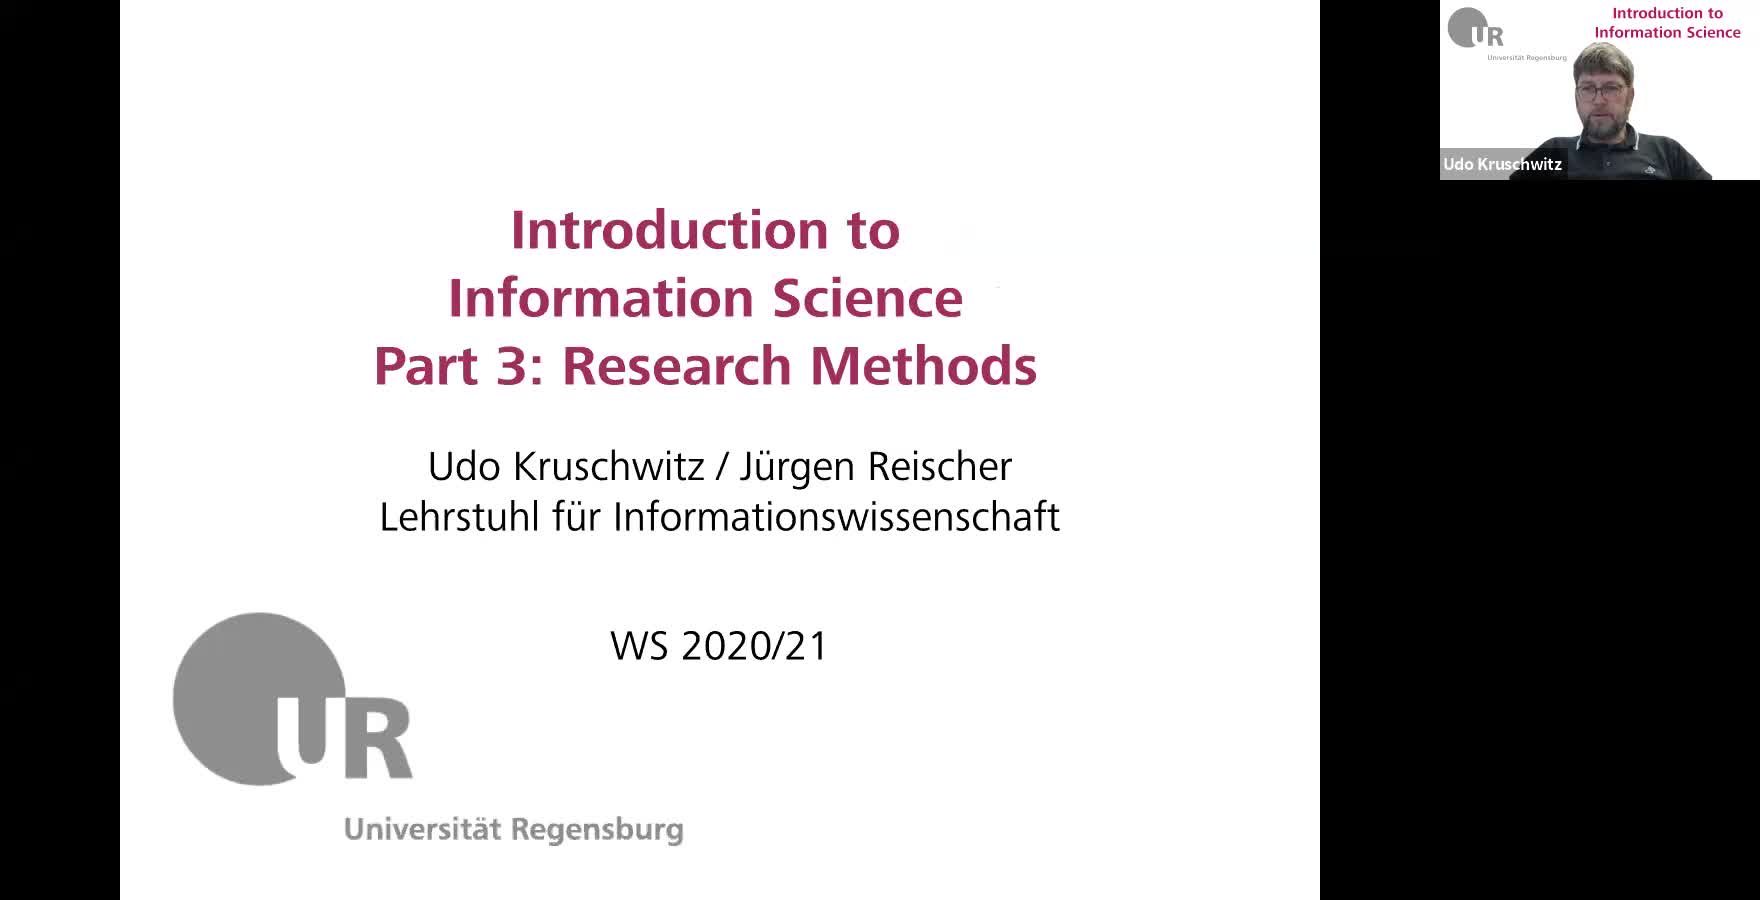 Introduction to Information Science - Lecture 4 (Research methods)